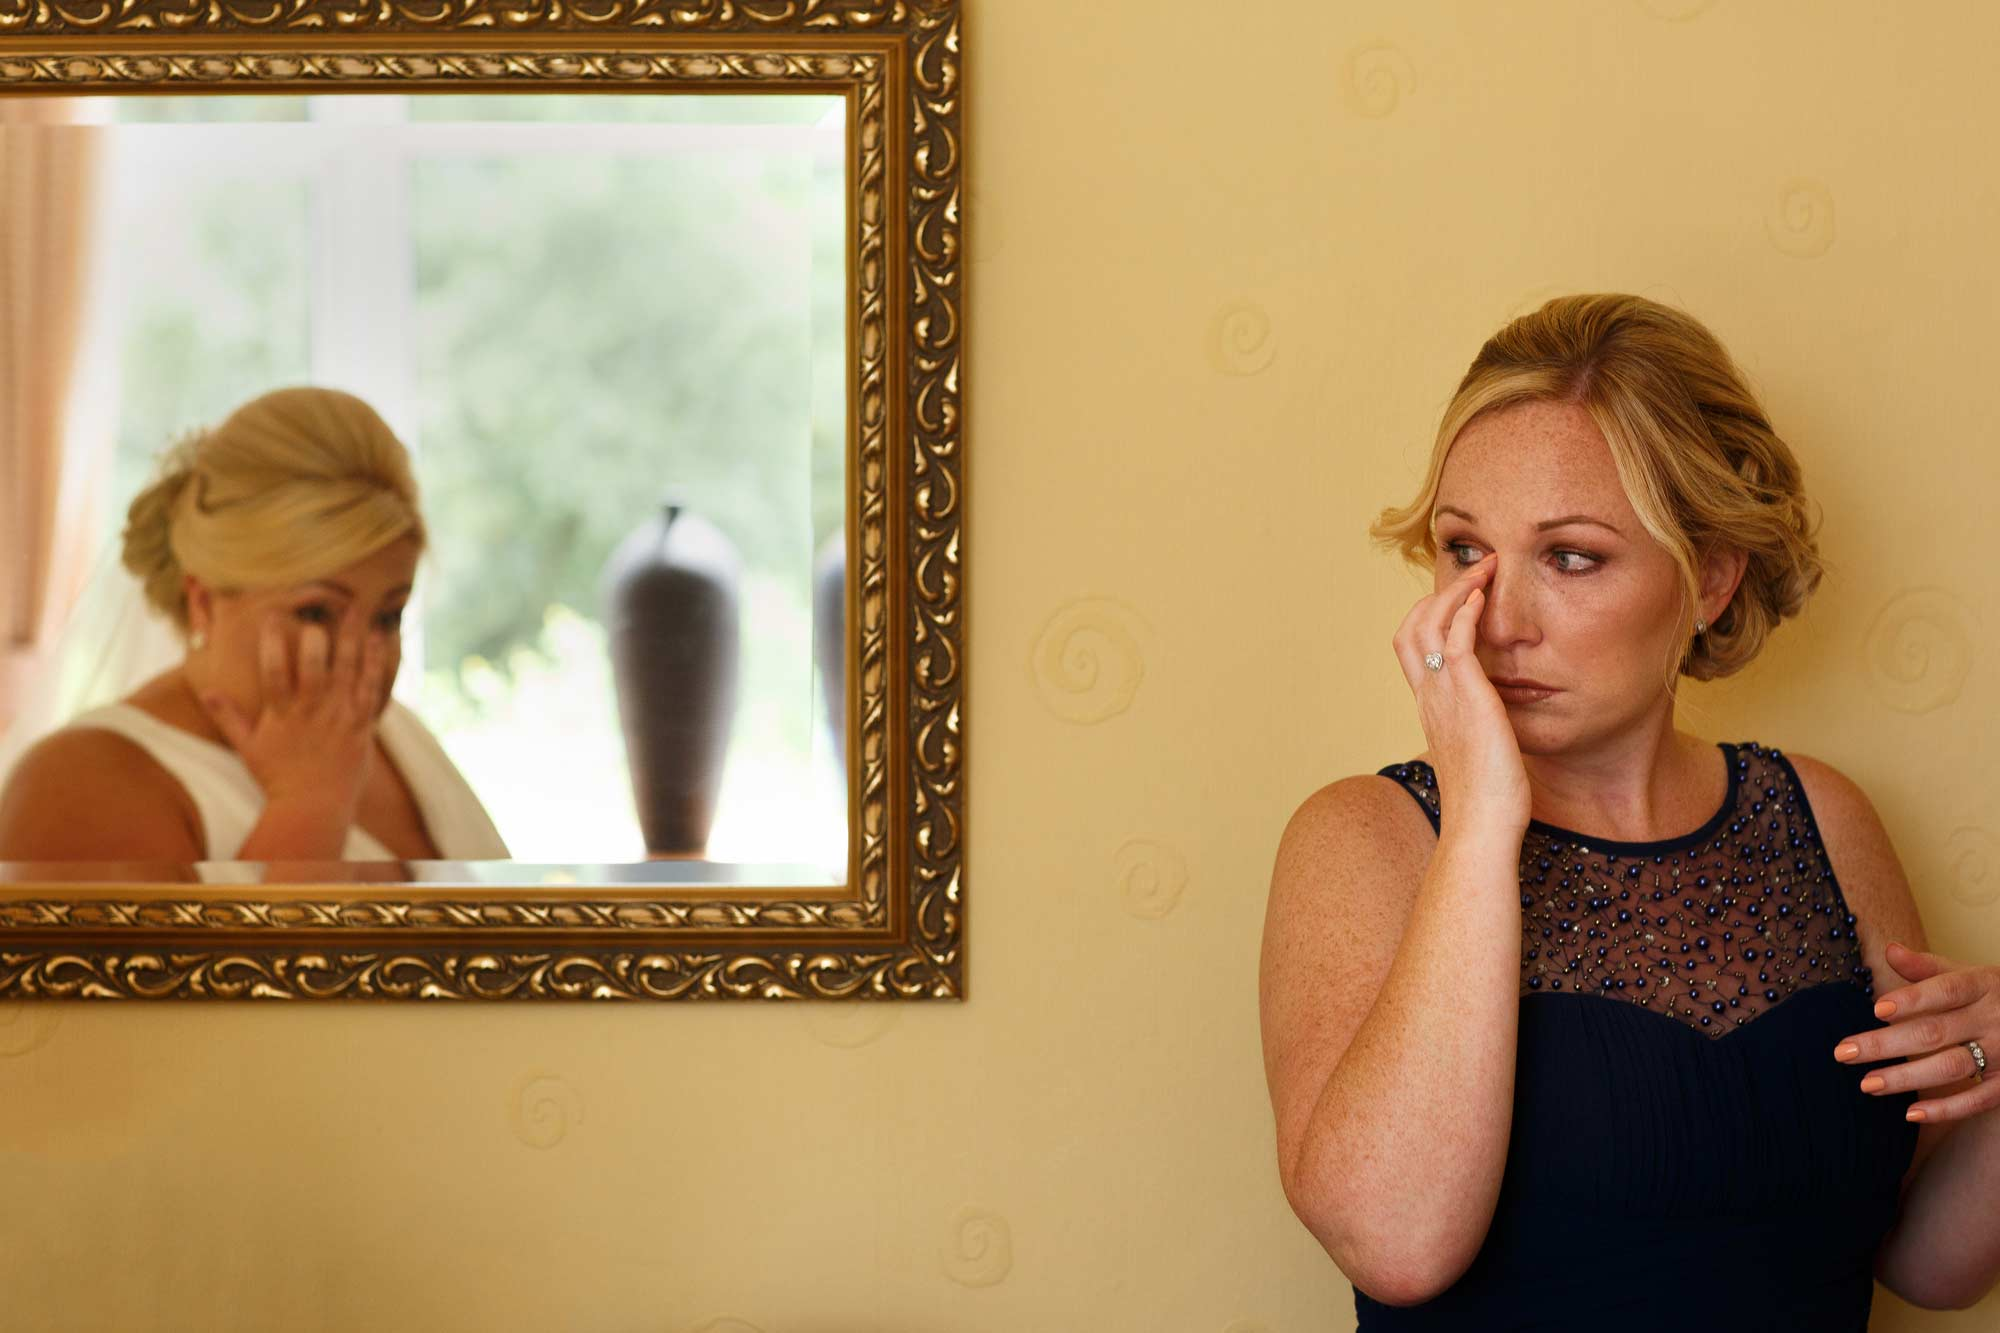 mirrored image of bride and bridesmaid wiping tears